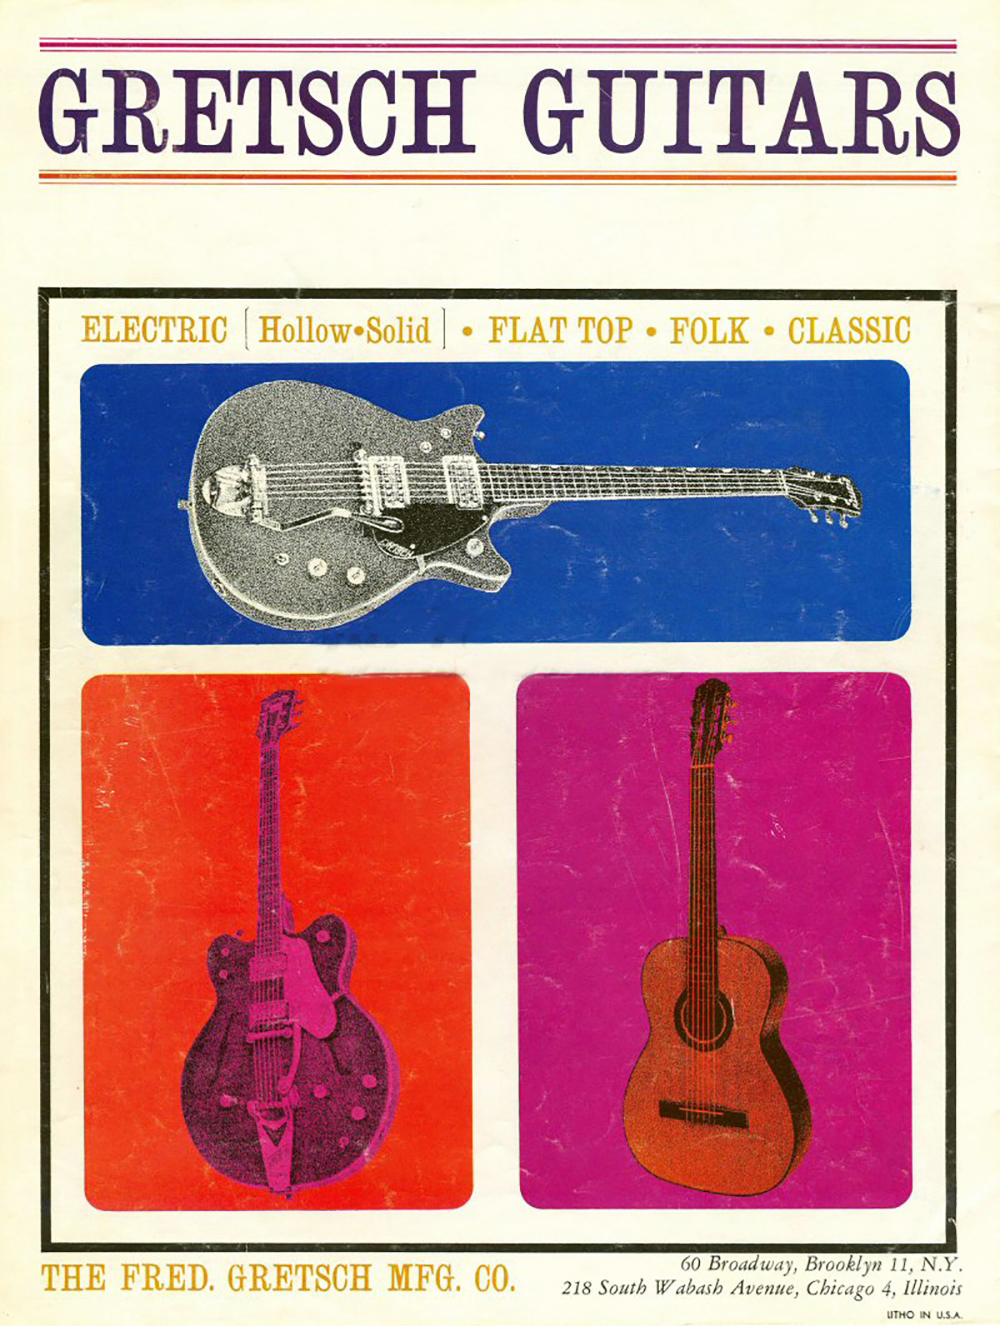 1963 Catalog #31, Cover, page 1